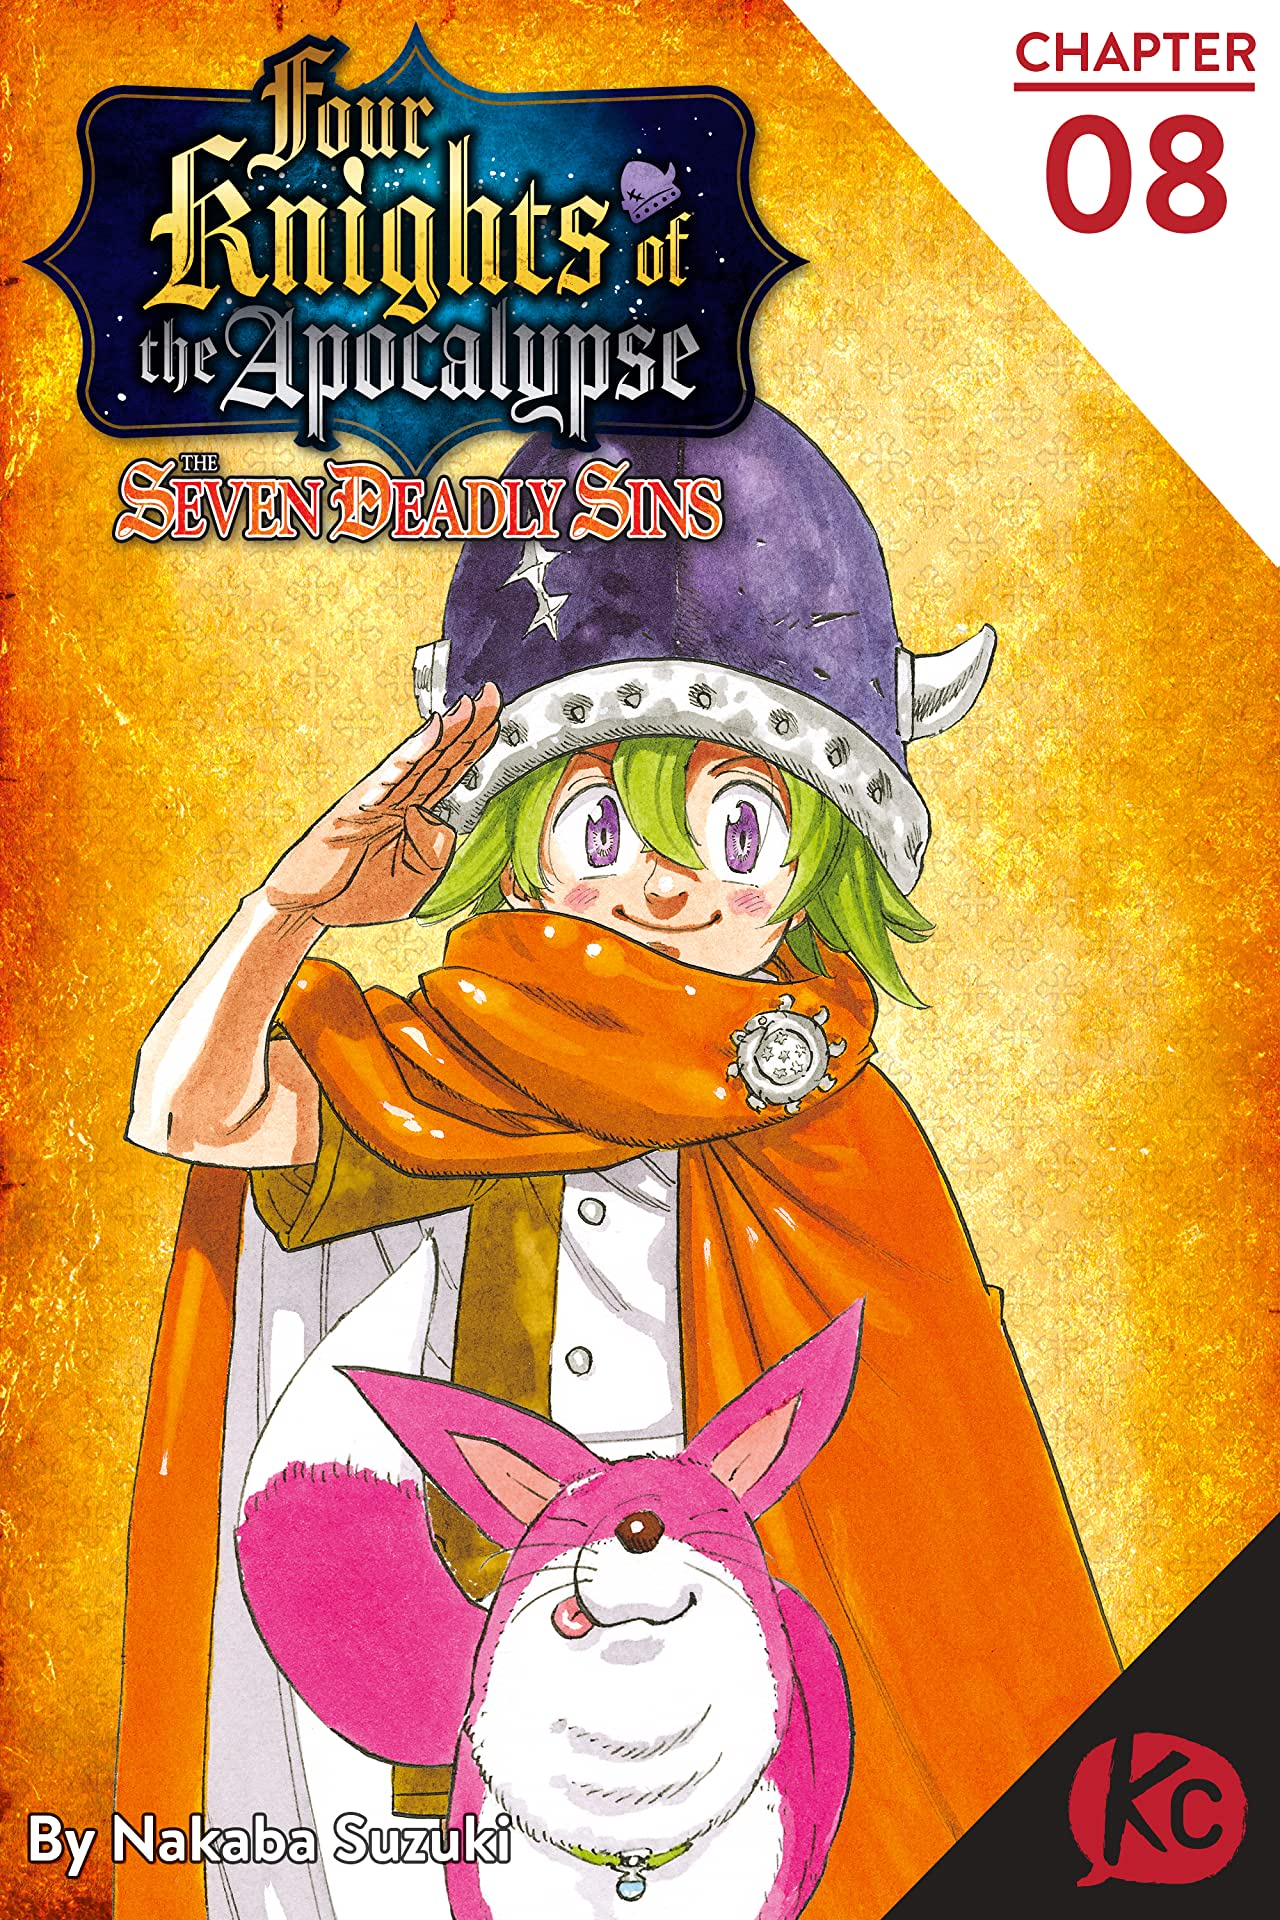 The Seven Deadly Sins: Four Knights of the Apocalypse #8